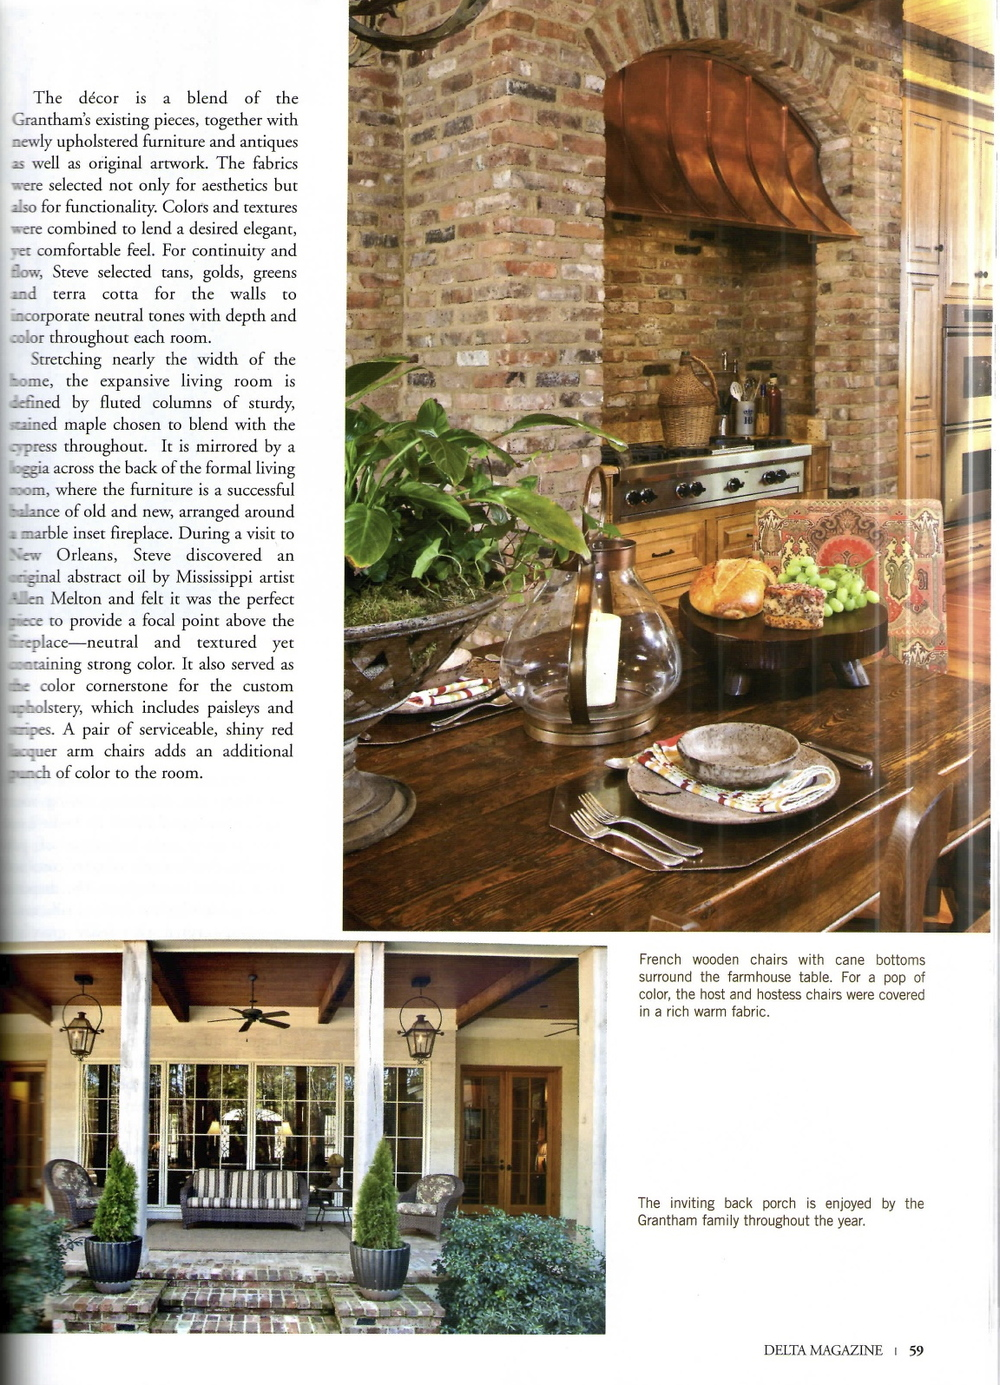 Grantham article - Delta Magazine -March April 2011 6.jpeg